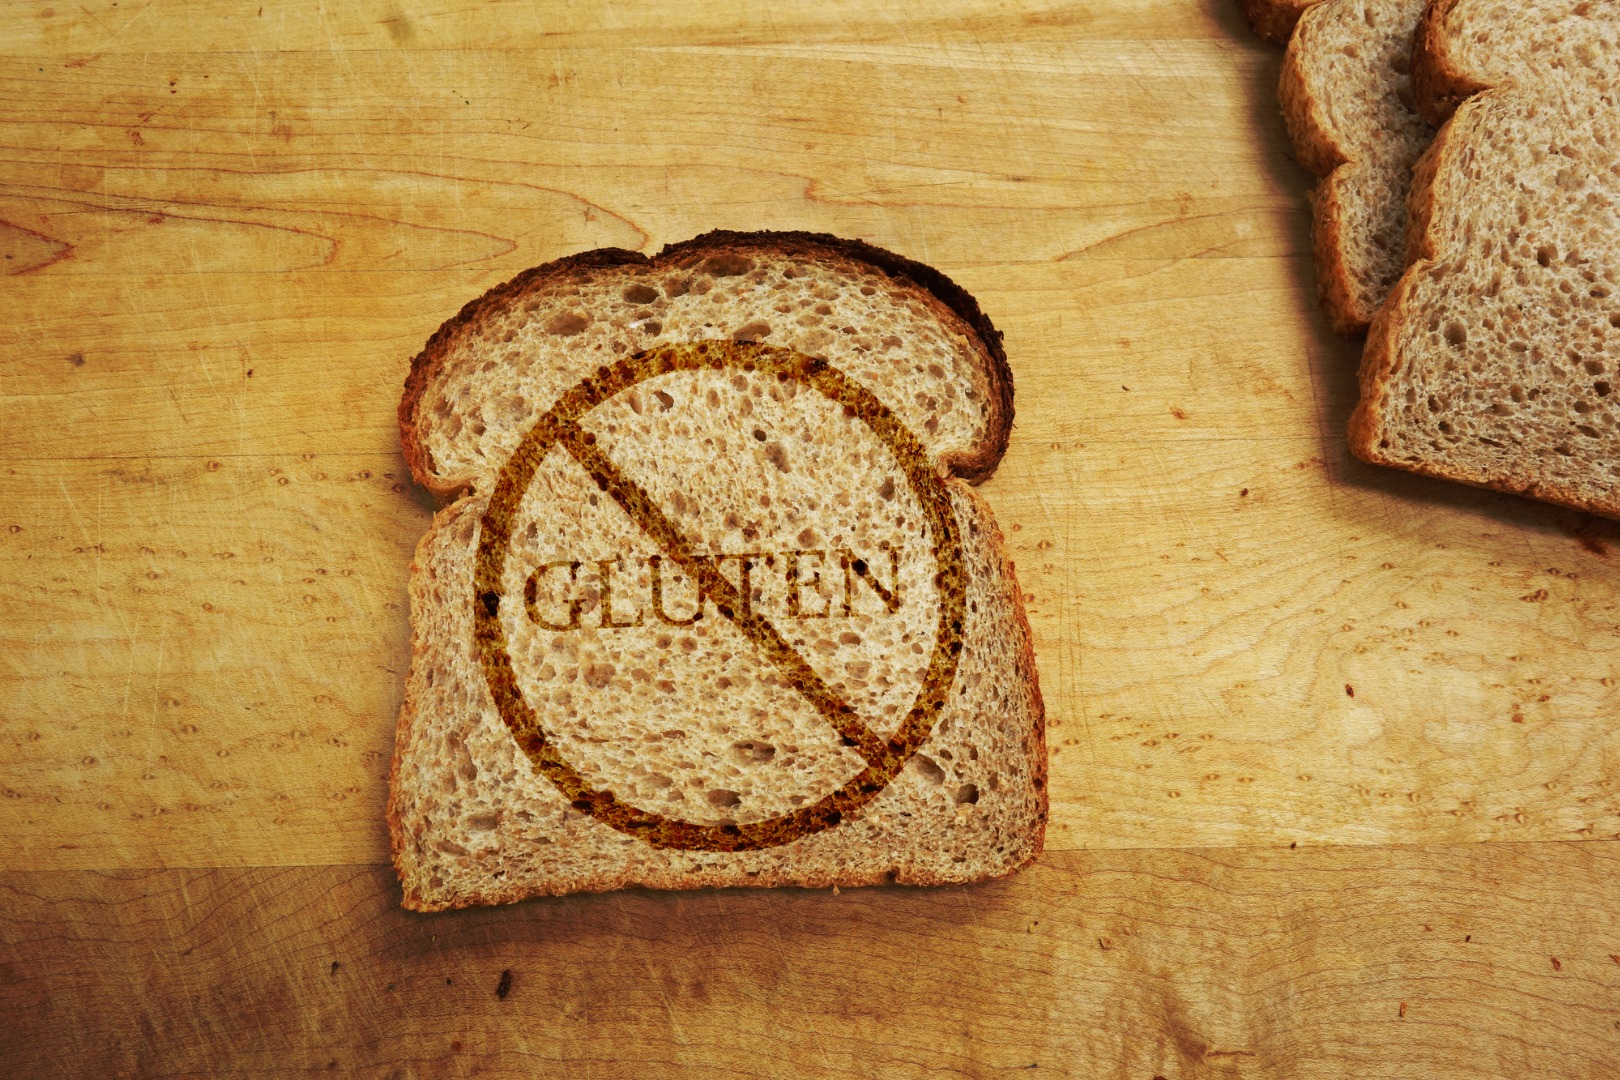 Gluten response biomarker offers potential new blood test to diagnose celiac disease